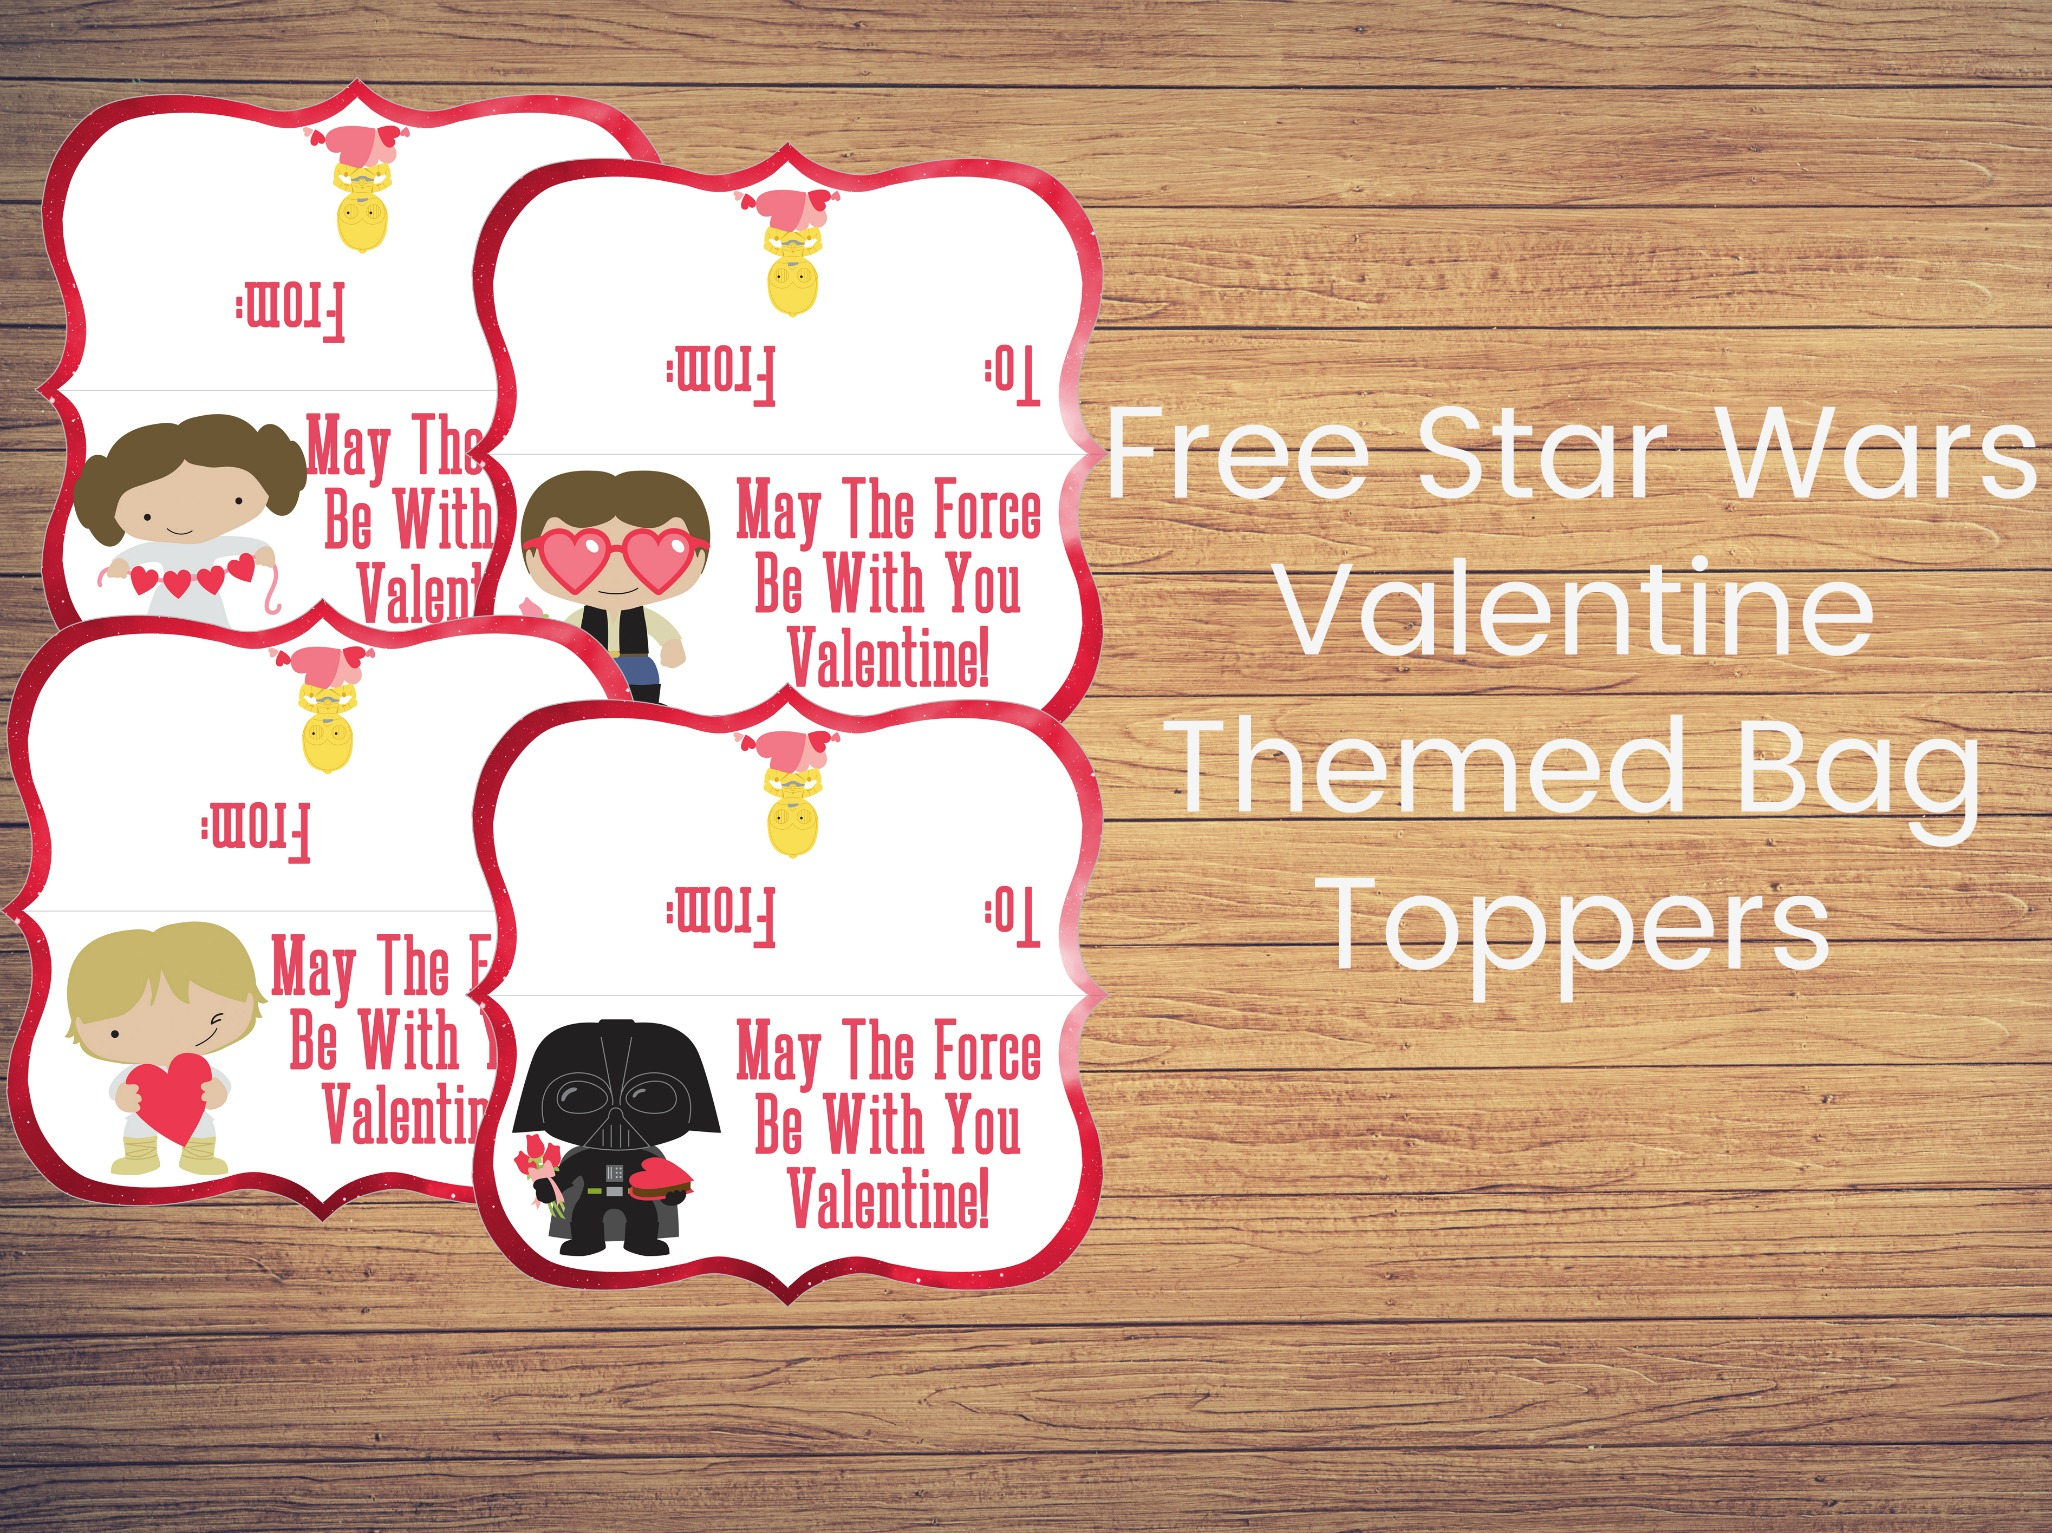 free star wars valentine themed bag toppers